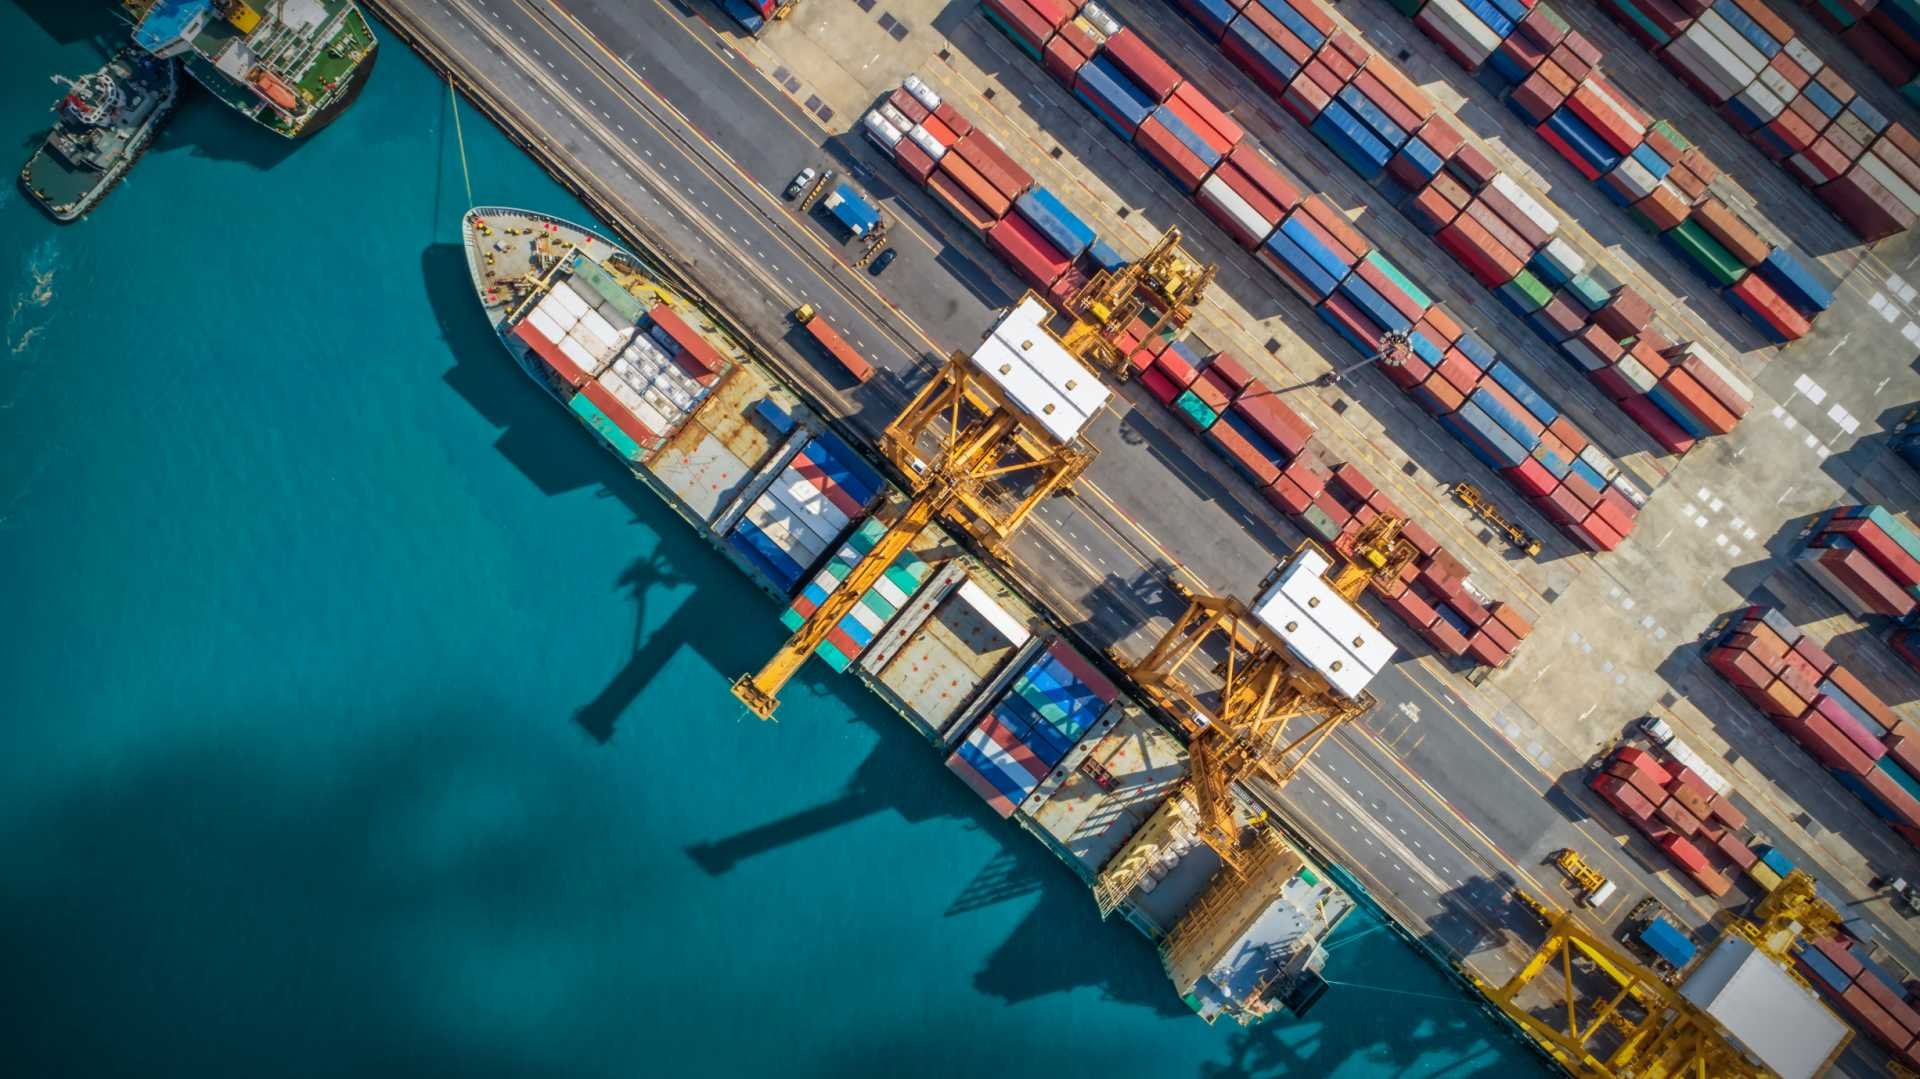 Shipping supply chain docks logistics containers port terminal - shutterstock_1094326709